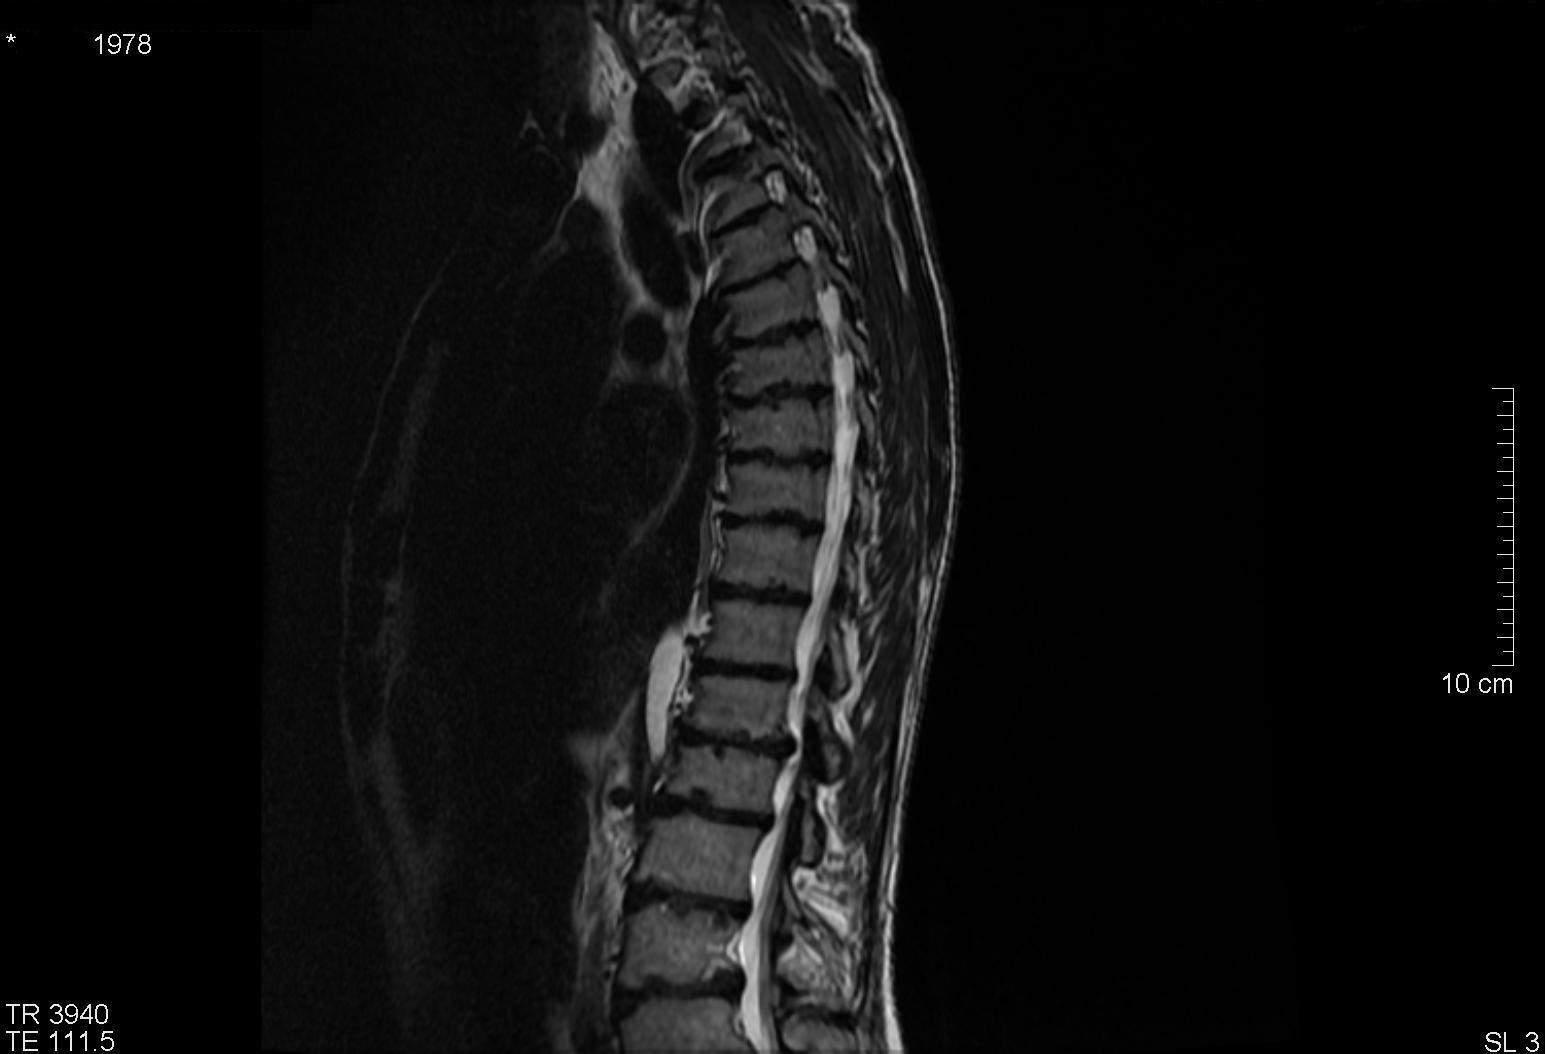 Osteochondrosis of the cervical spine